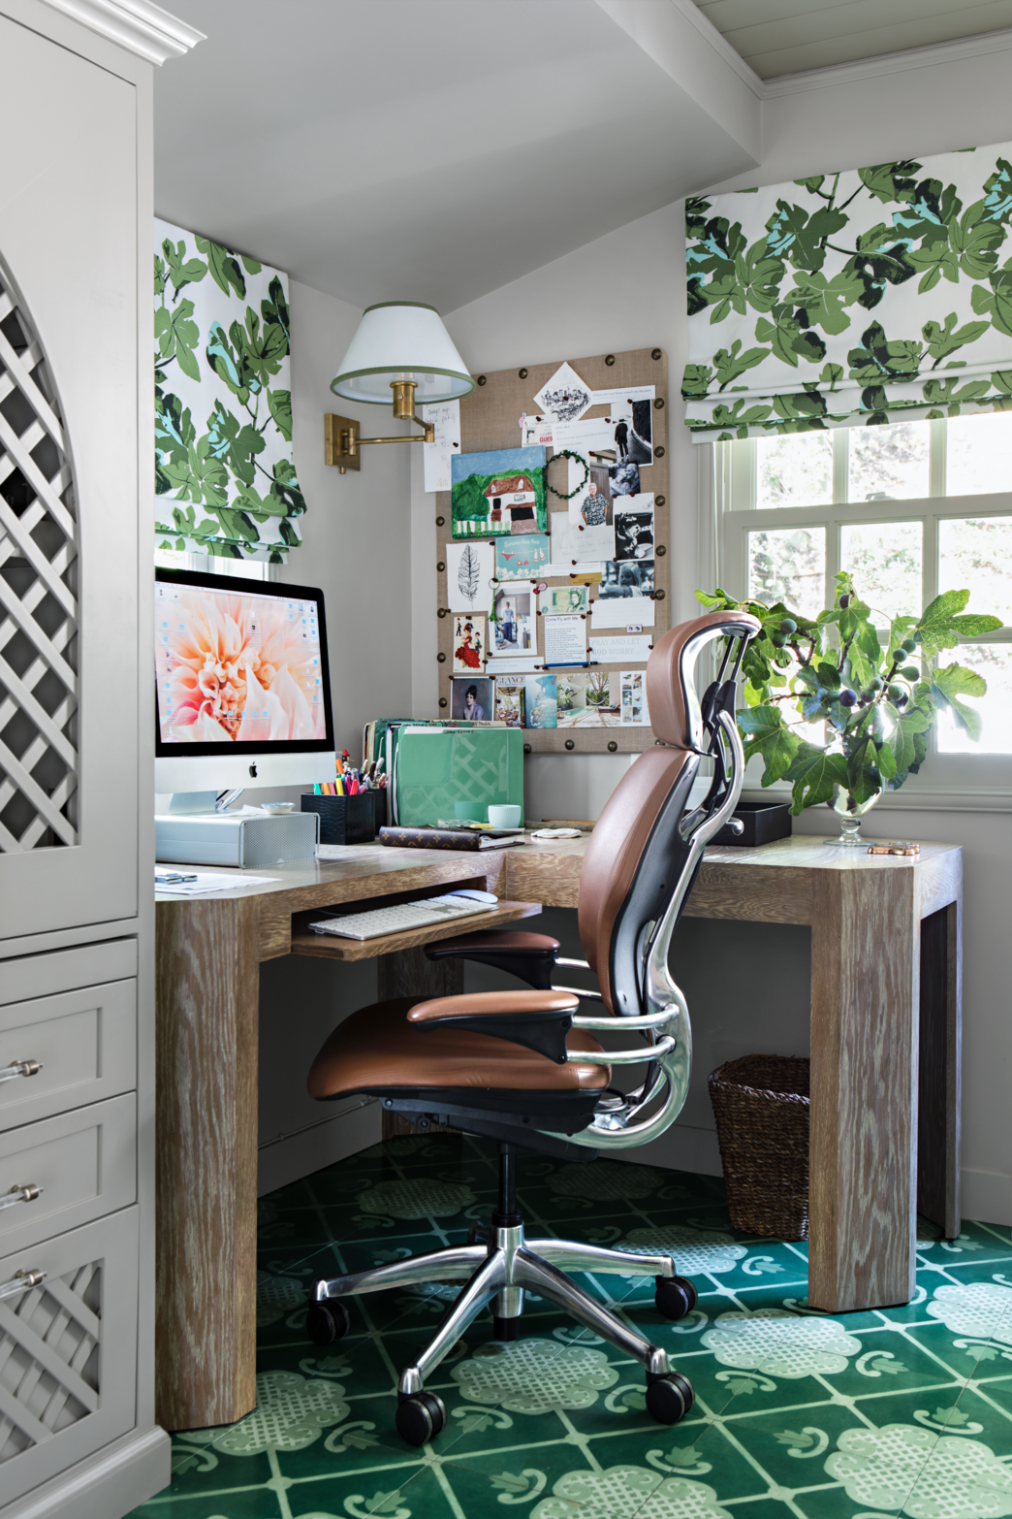 11 Best Home Office Ideas - Home Office Decor Photos - home office ideas for writers